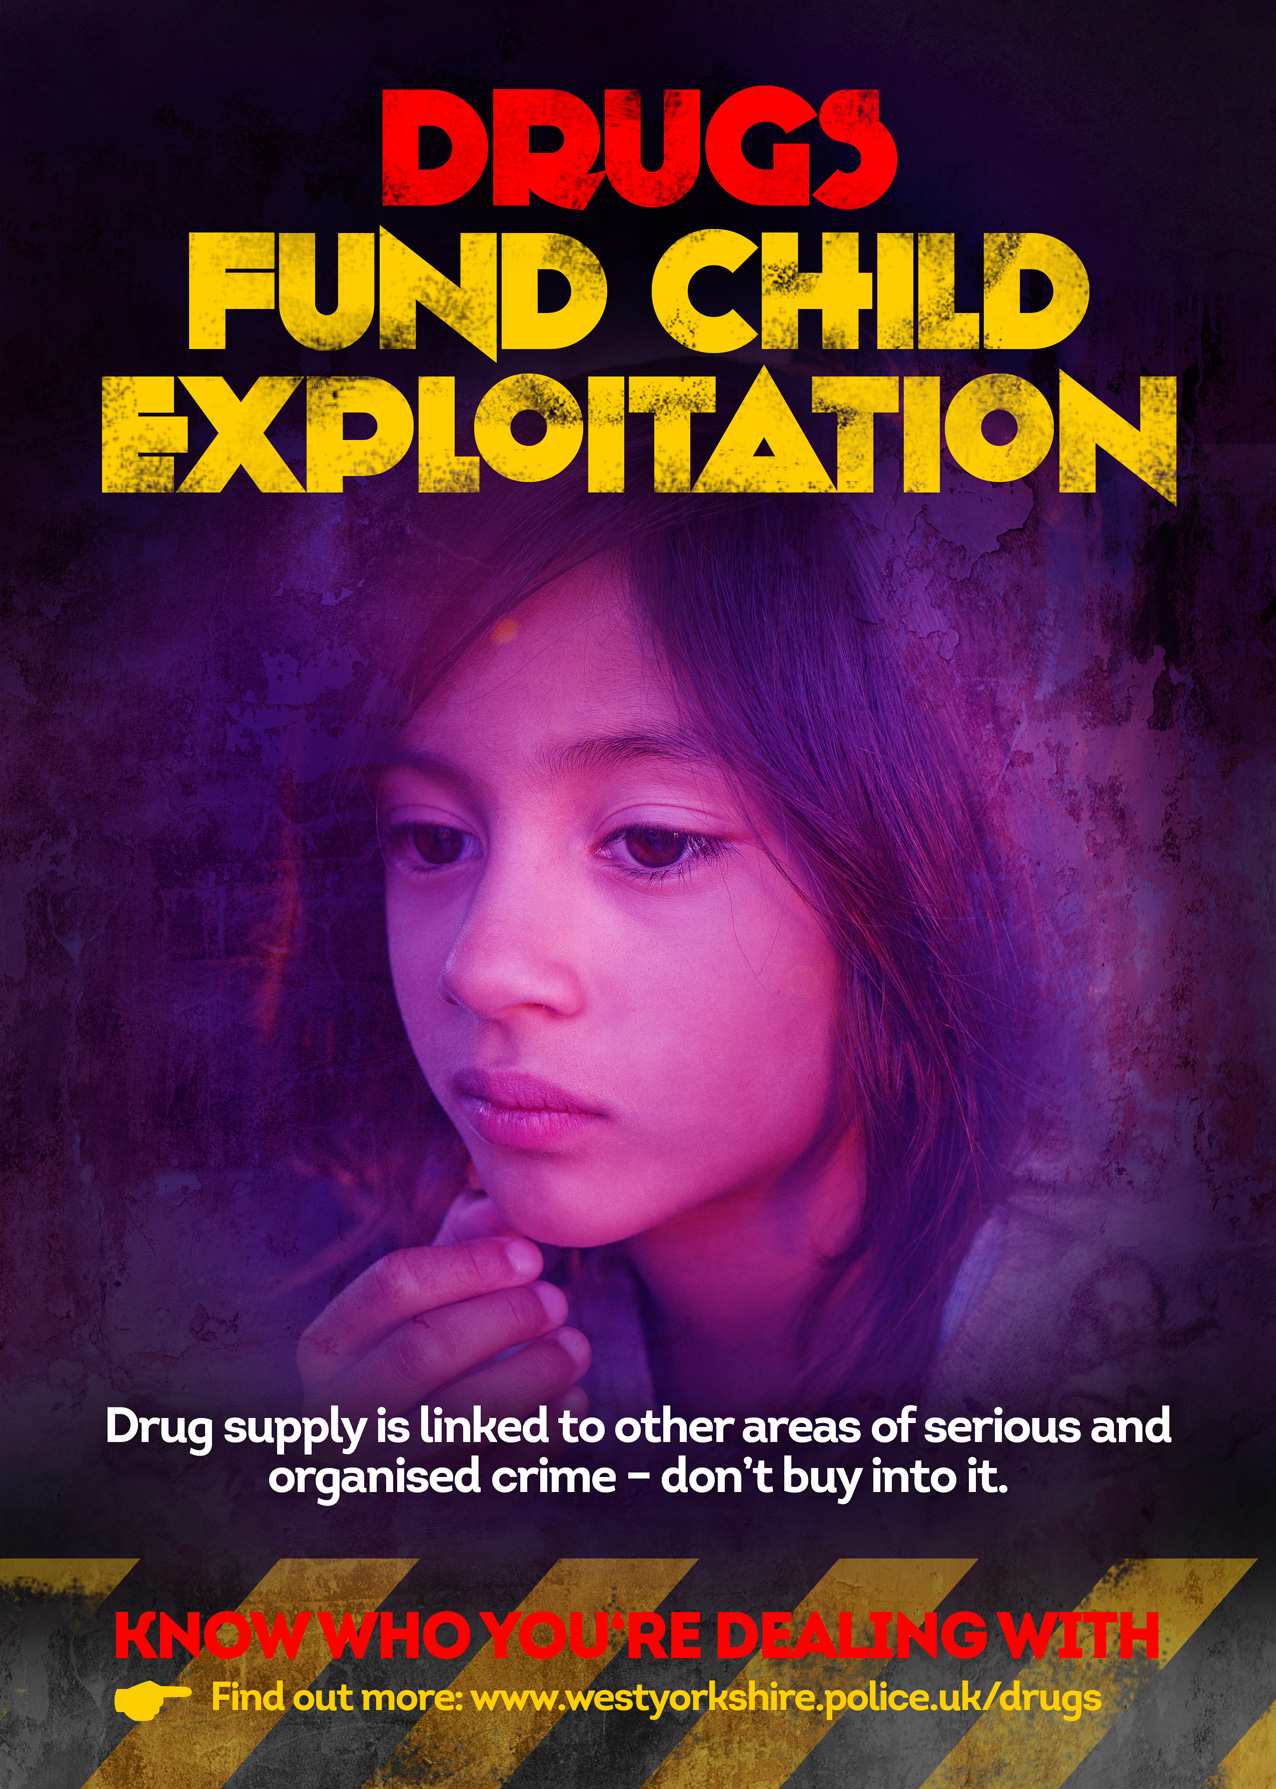 Drugs Fund Child Exploitation Poster